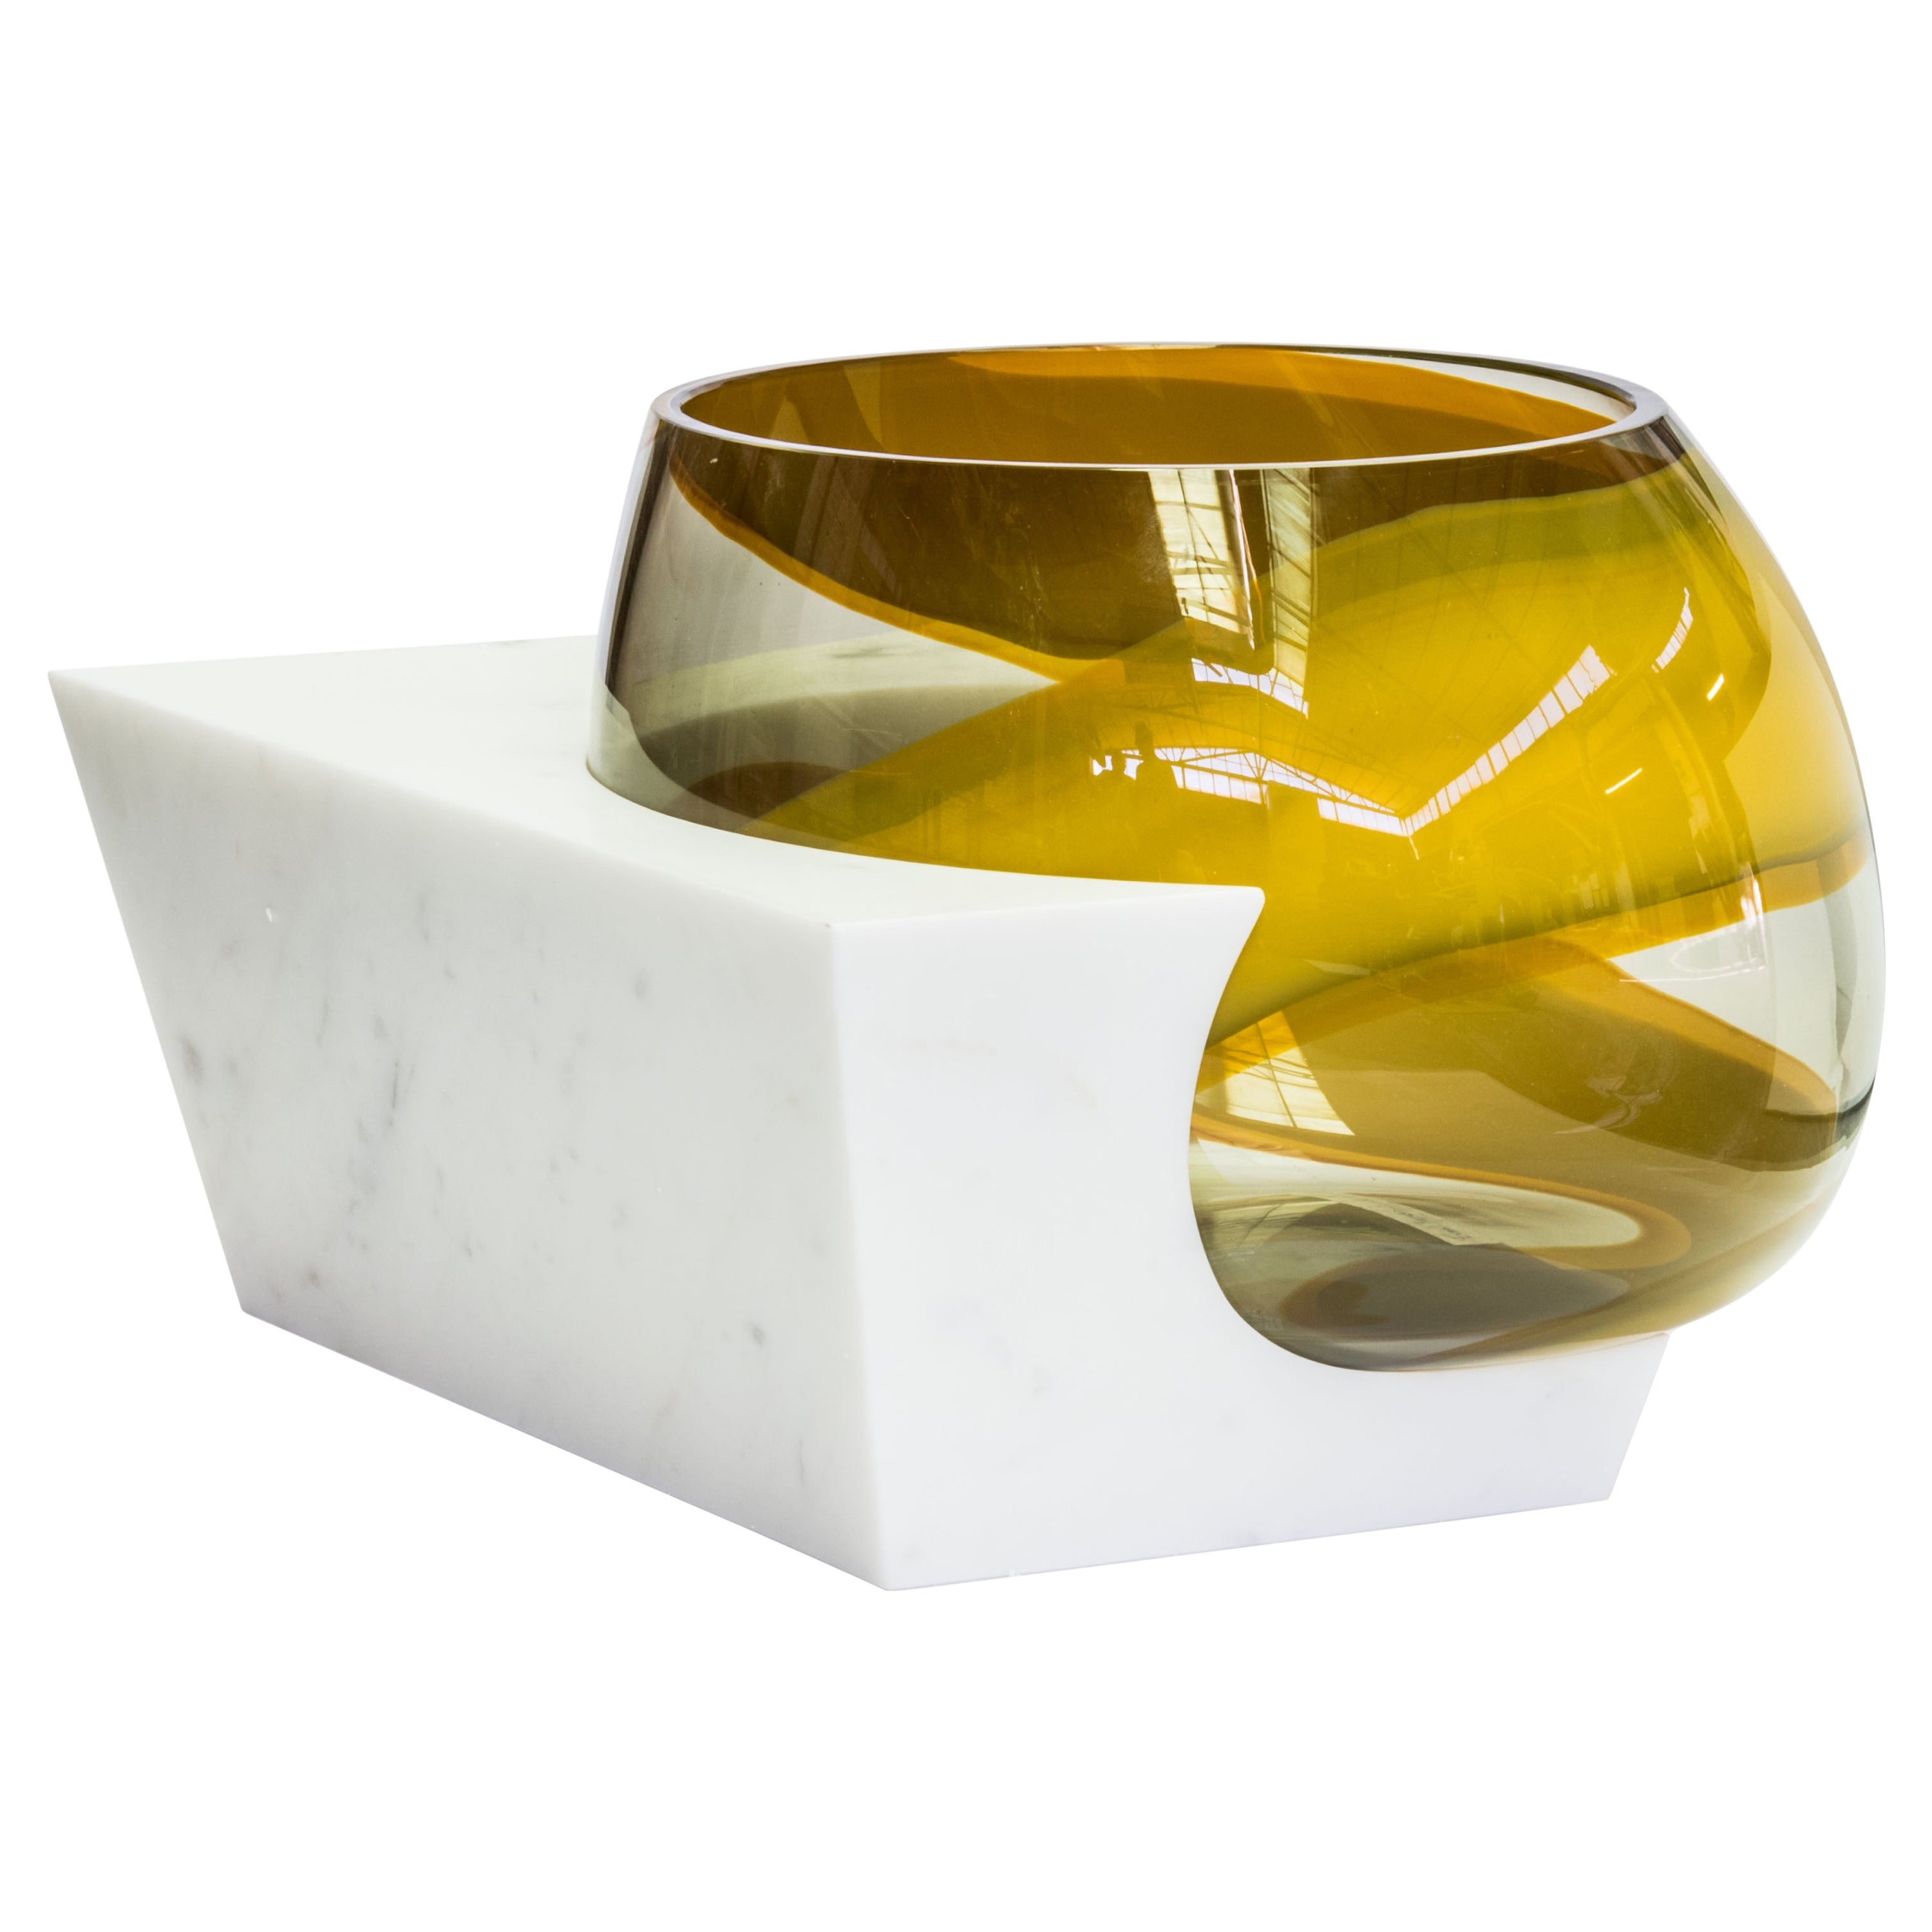 OSMOSI Artist Proof Glass and Marble Sculpture by Emmanuel Babled for Venini